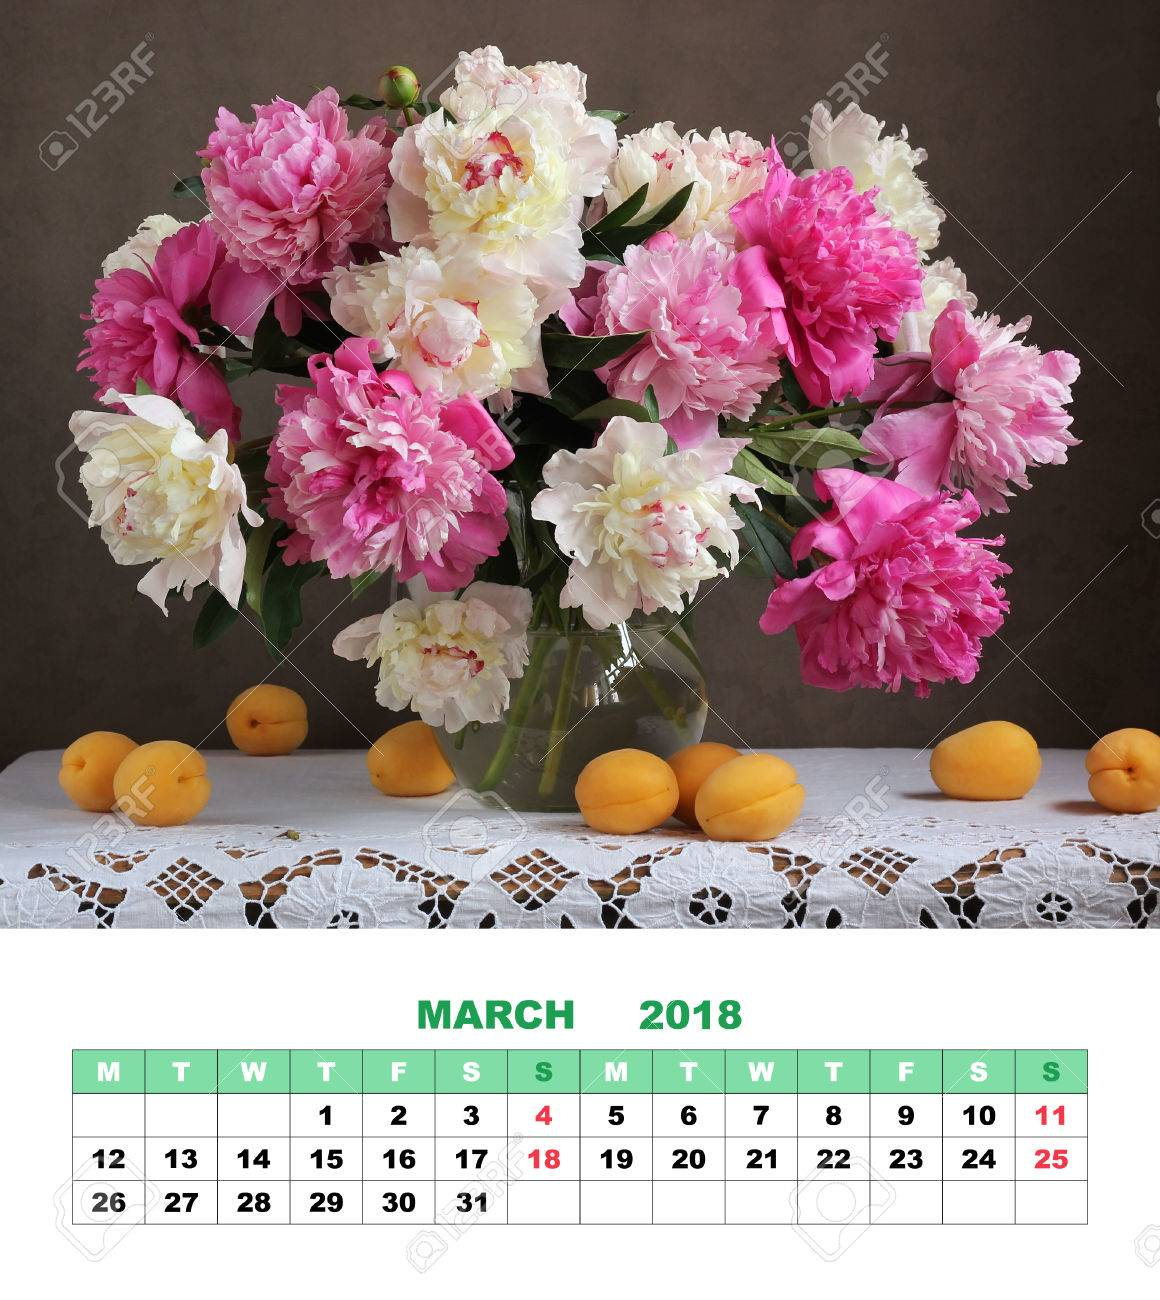 Design Page Calendar March 2018 Pink And White Peonies Flowers